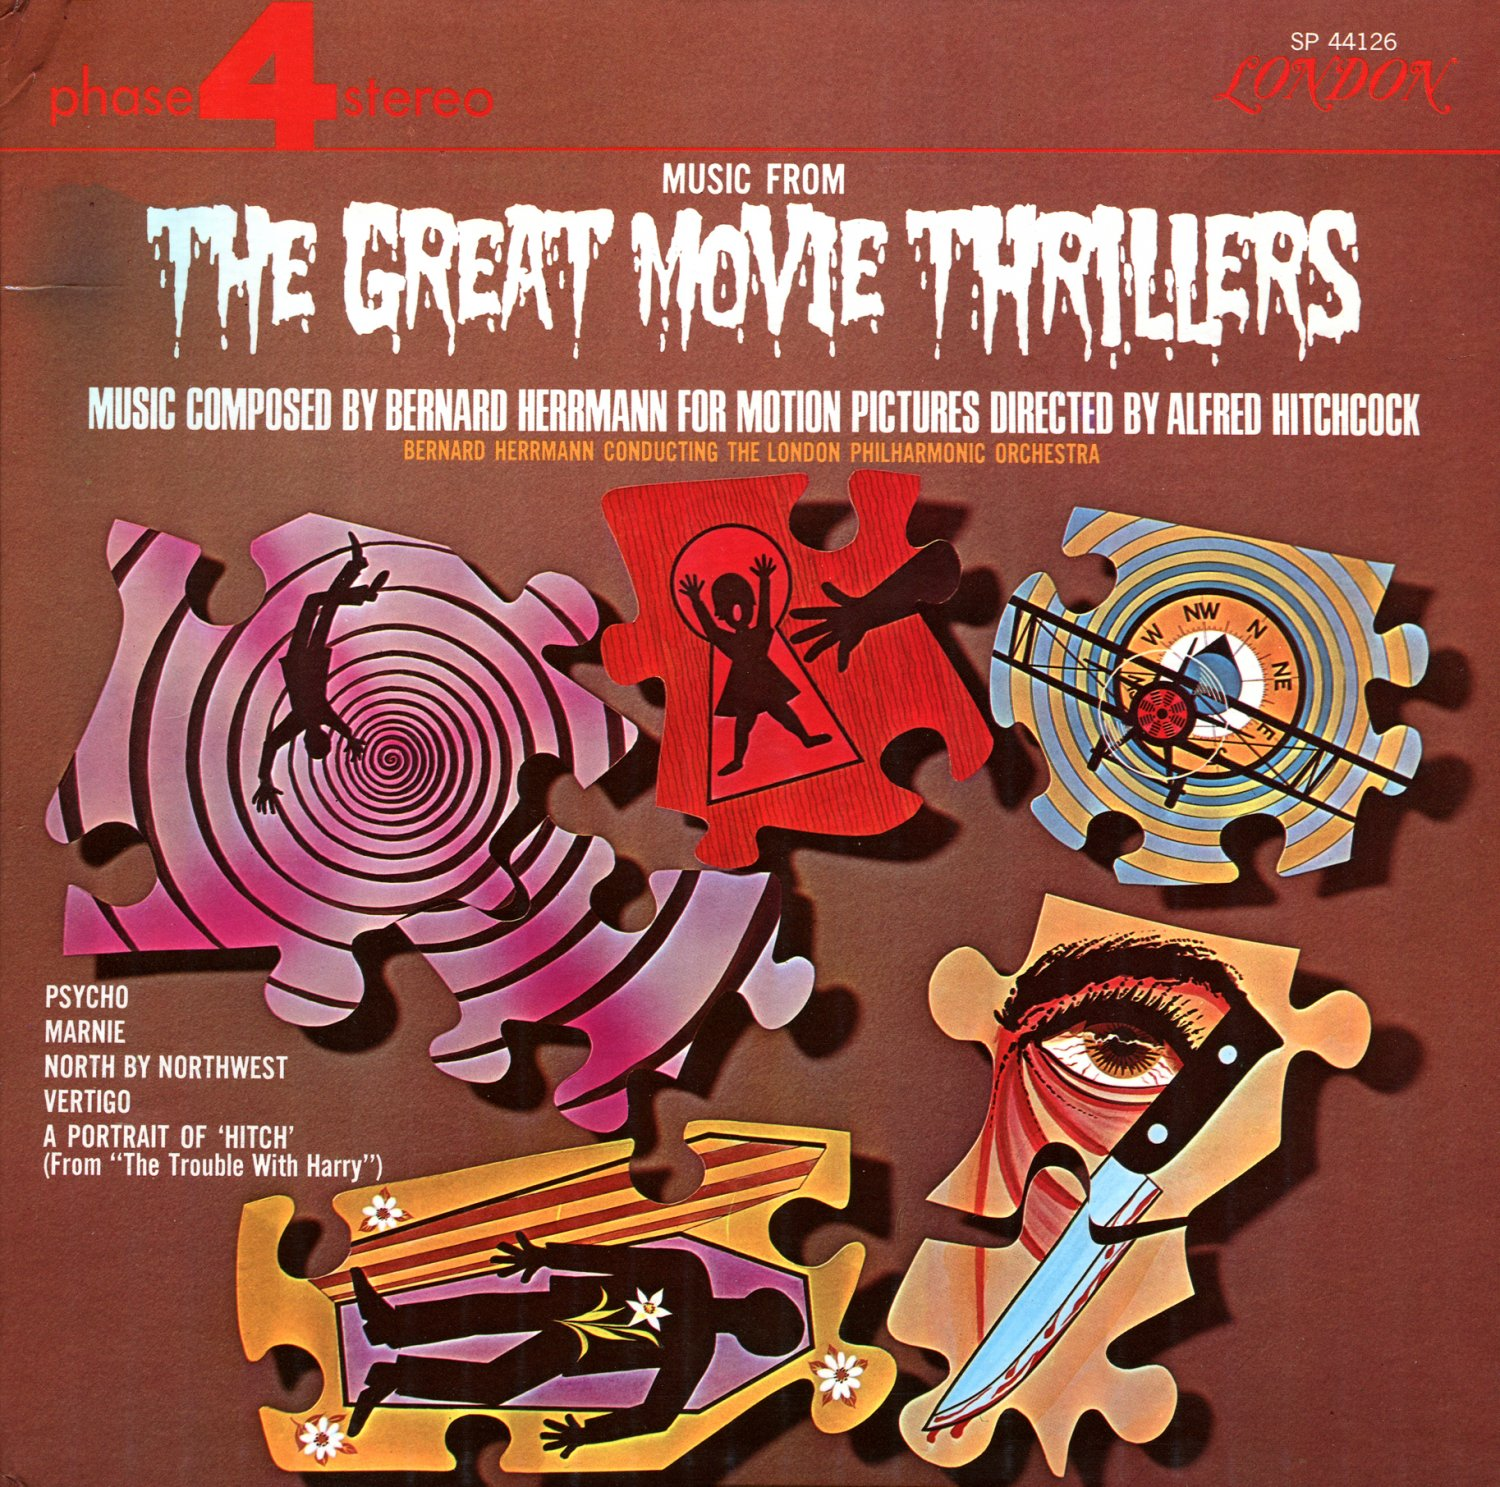 Music From The Great Movie Thrillers - Bernard Herrmann/Aflred Hitchock Collection LP/CD